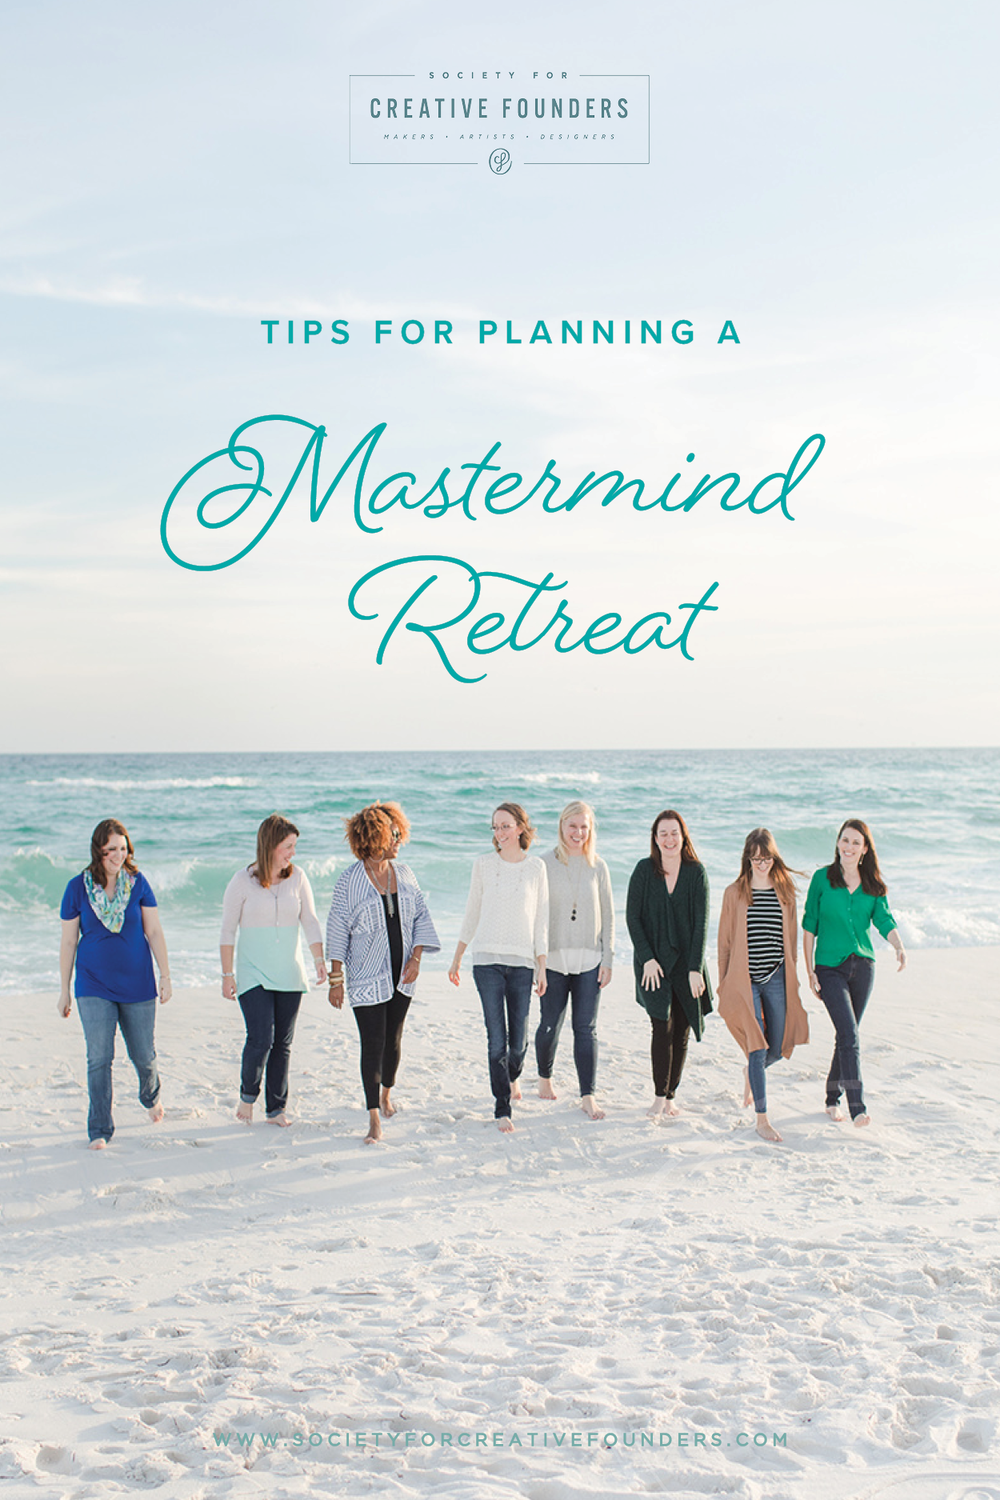 Planning a Mastermind Retreat - Society for Creative Founders_0436